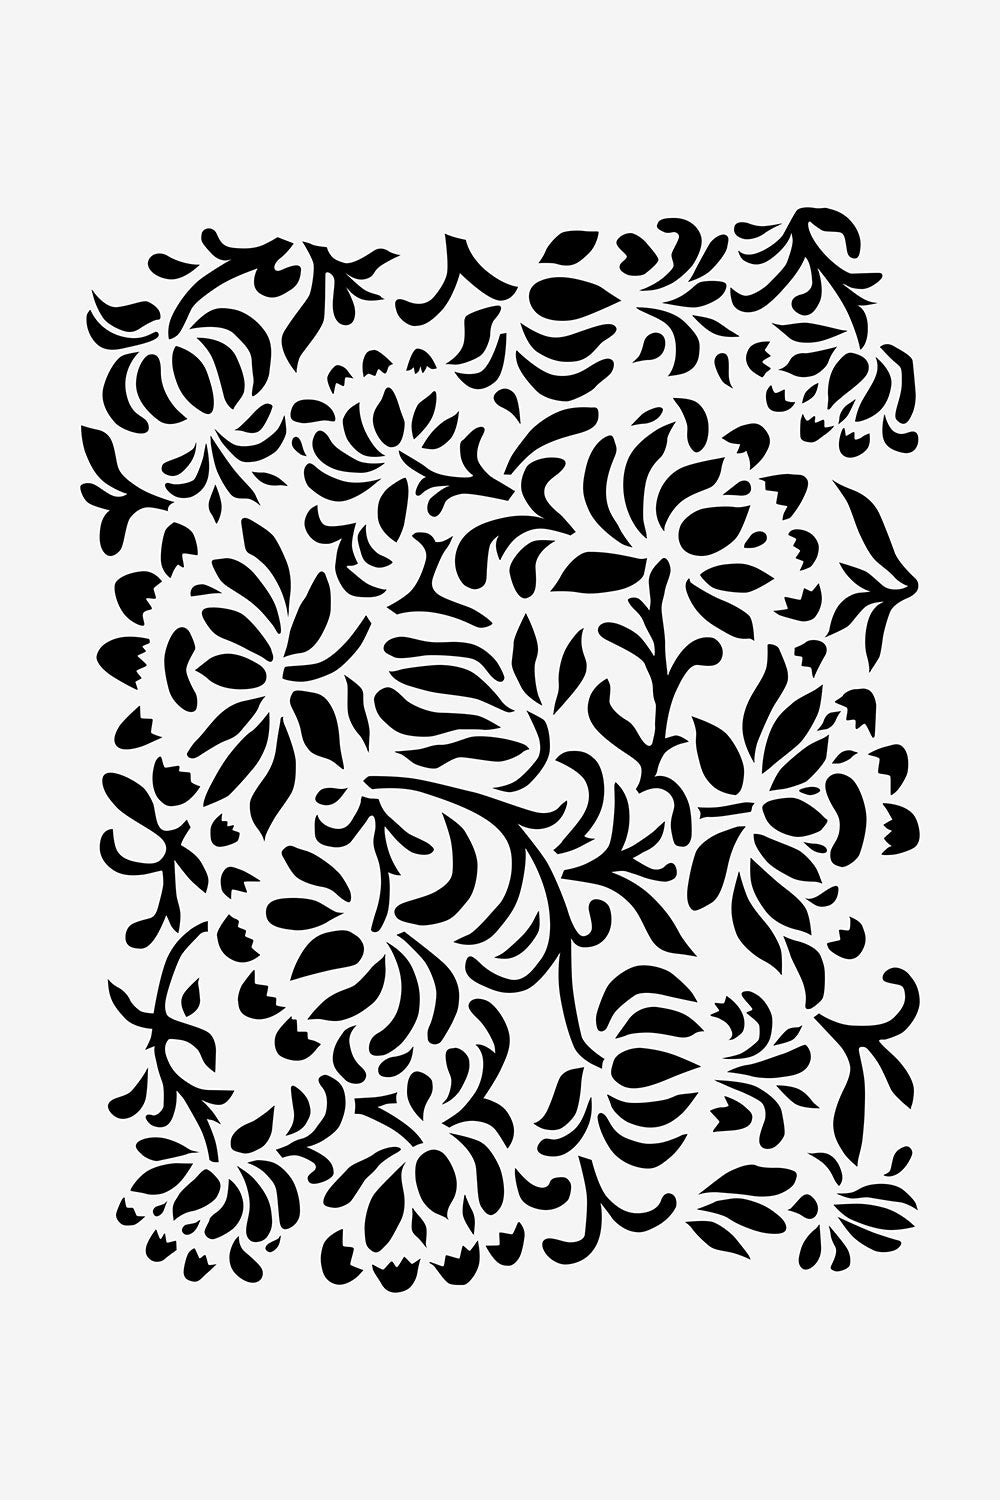 The School of Making Magdalena Stencil Flora Stencil Design for Hand-Painted Clothing Projects